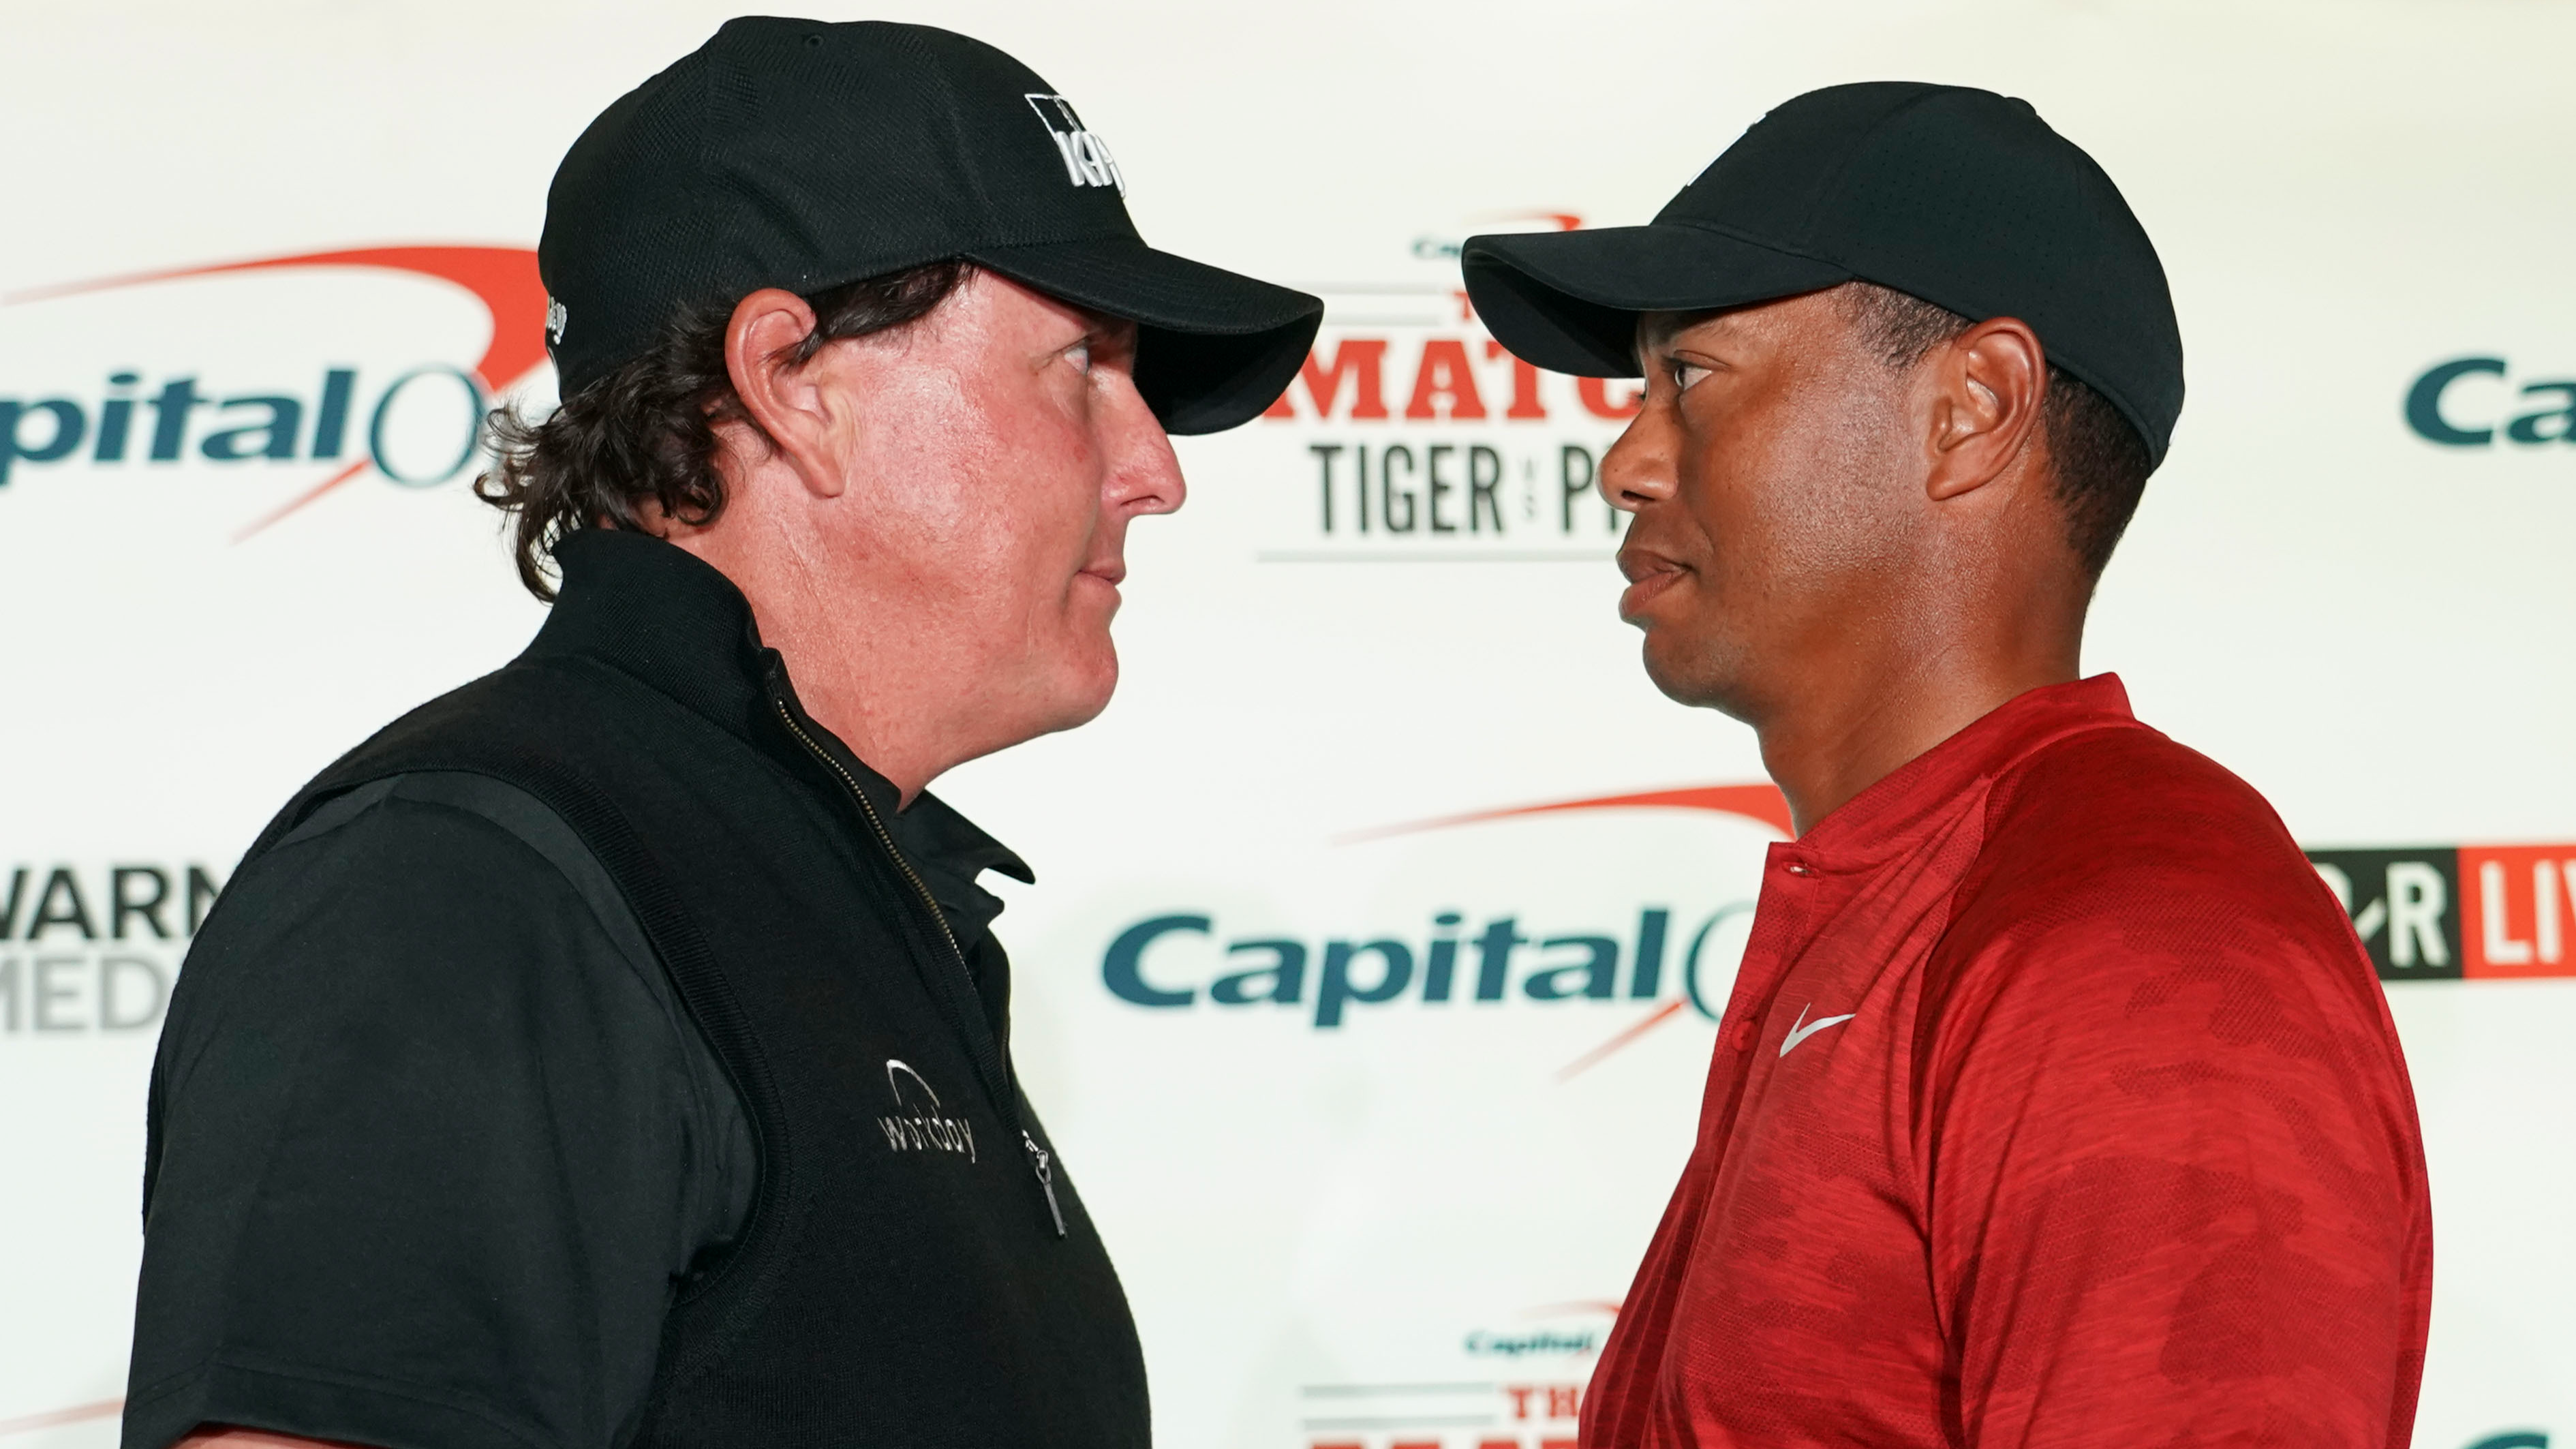 Phil Mickelson And Tiger Woods' Face Off Didn't Go According To Plan